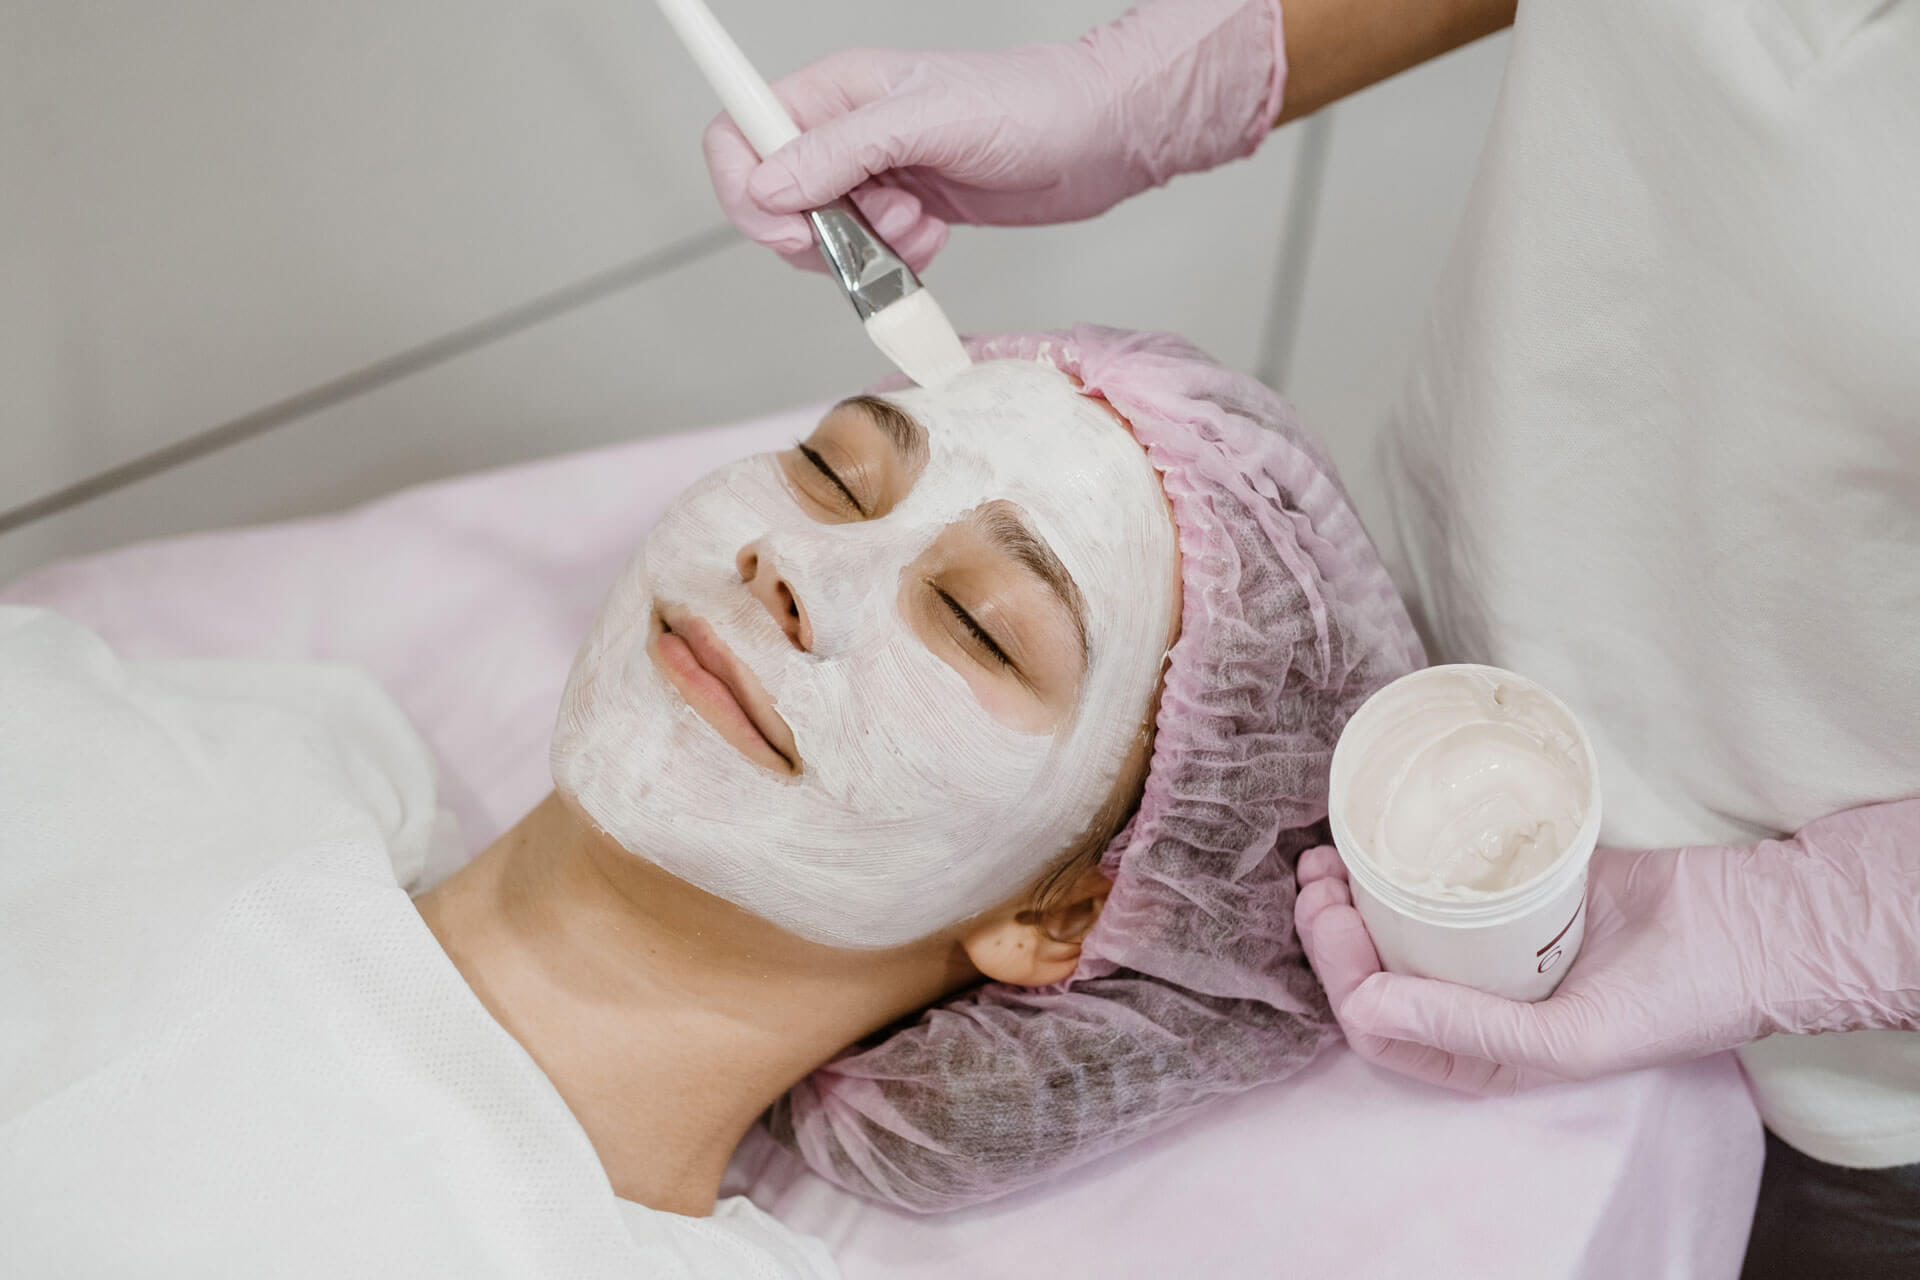 Skincare Trends for 2021